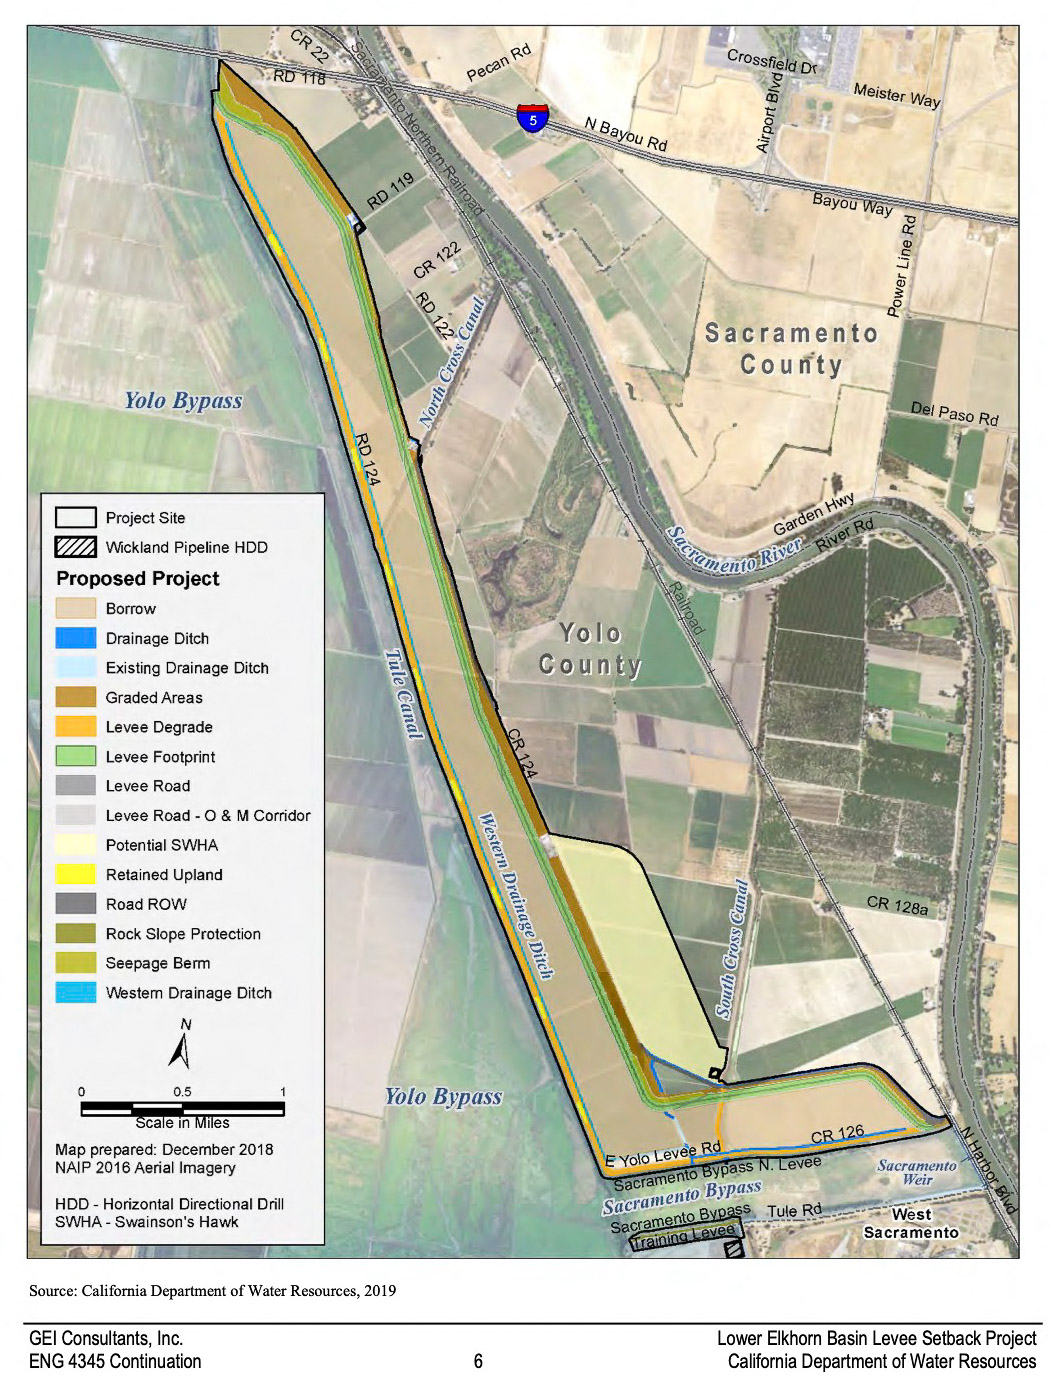 Progress on the Lower Elkhorn Basin Levee Setback